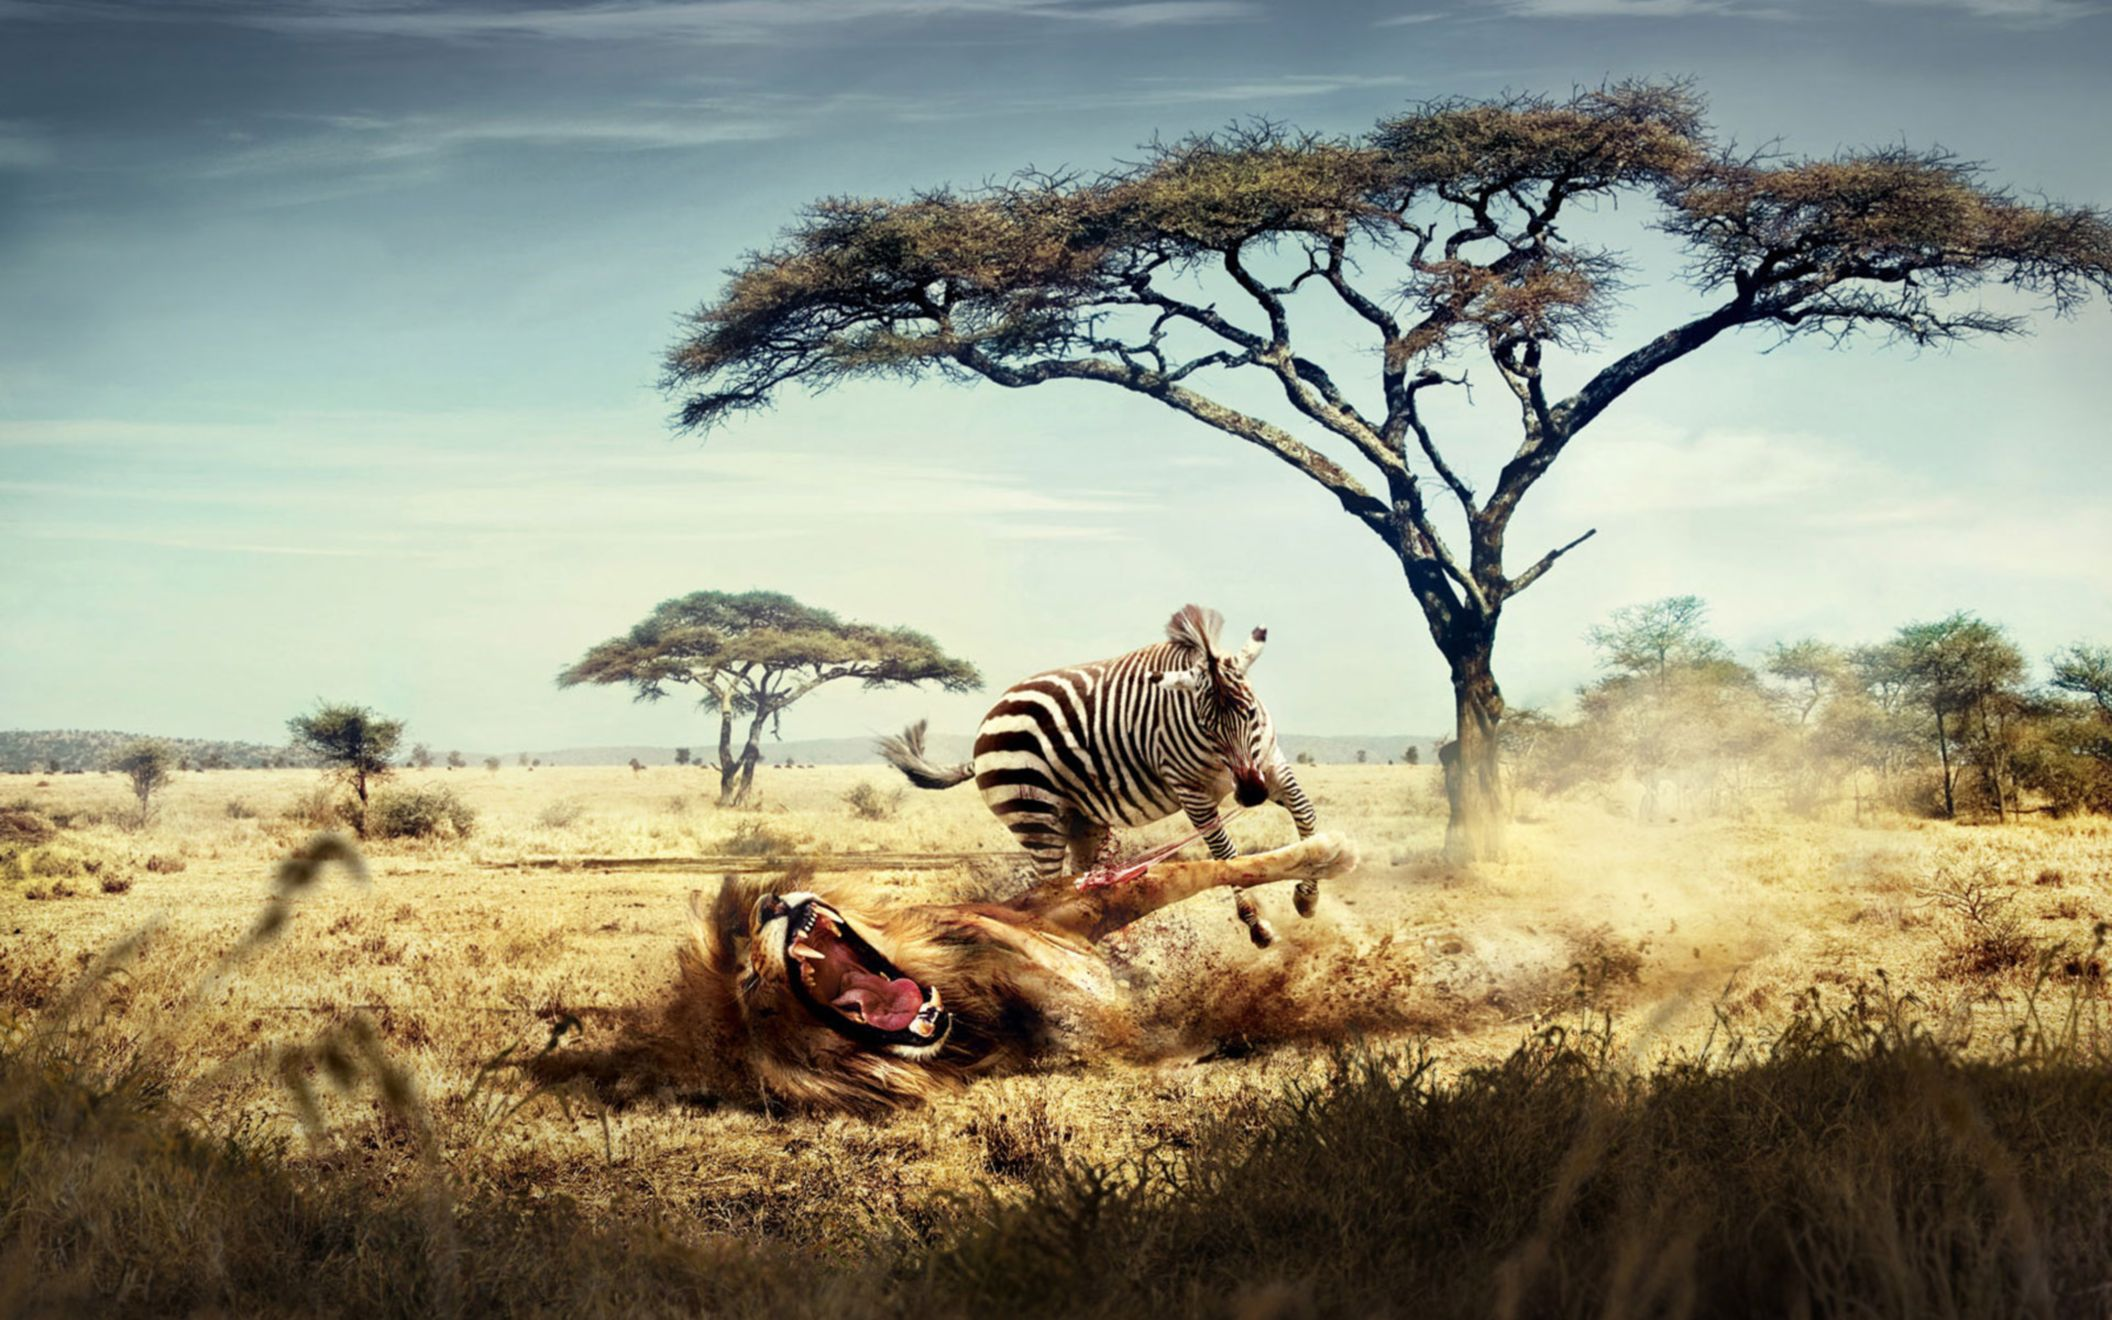 Download free HD Wild Lion Zebra Chase Wide Wallpaper, image